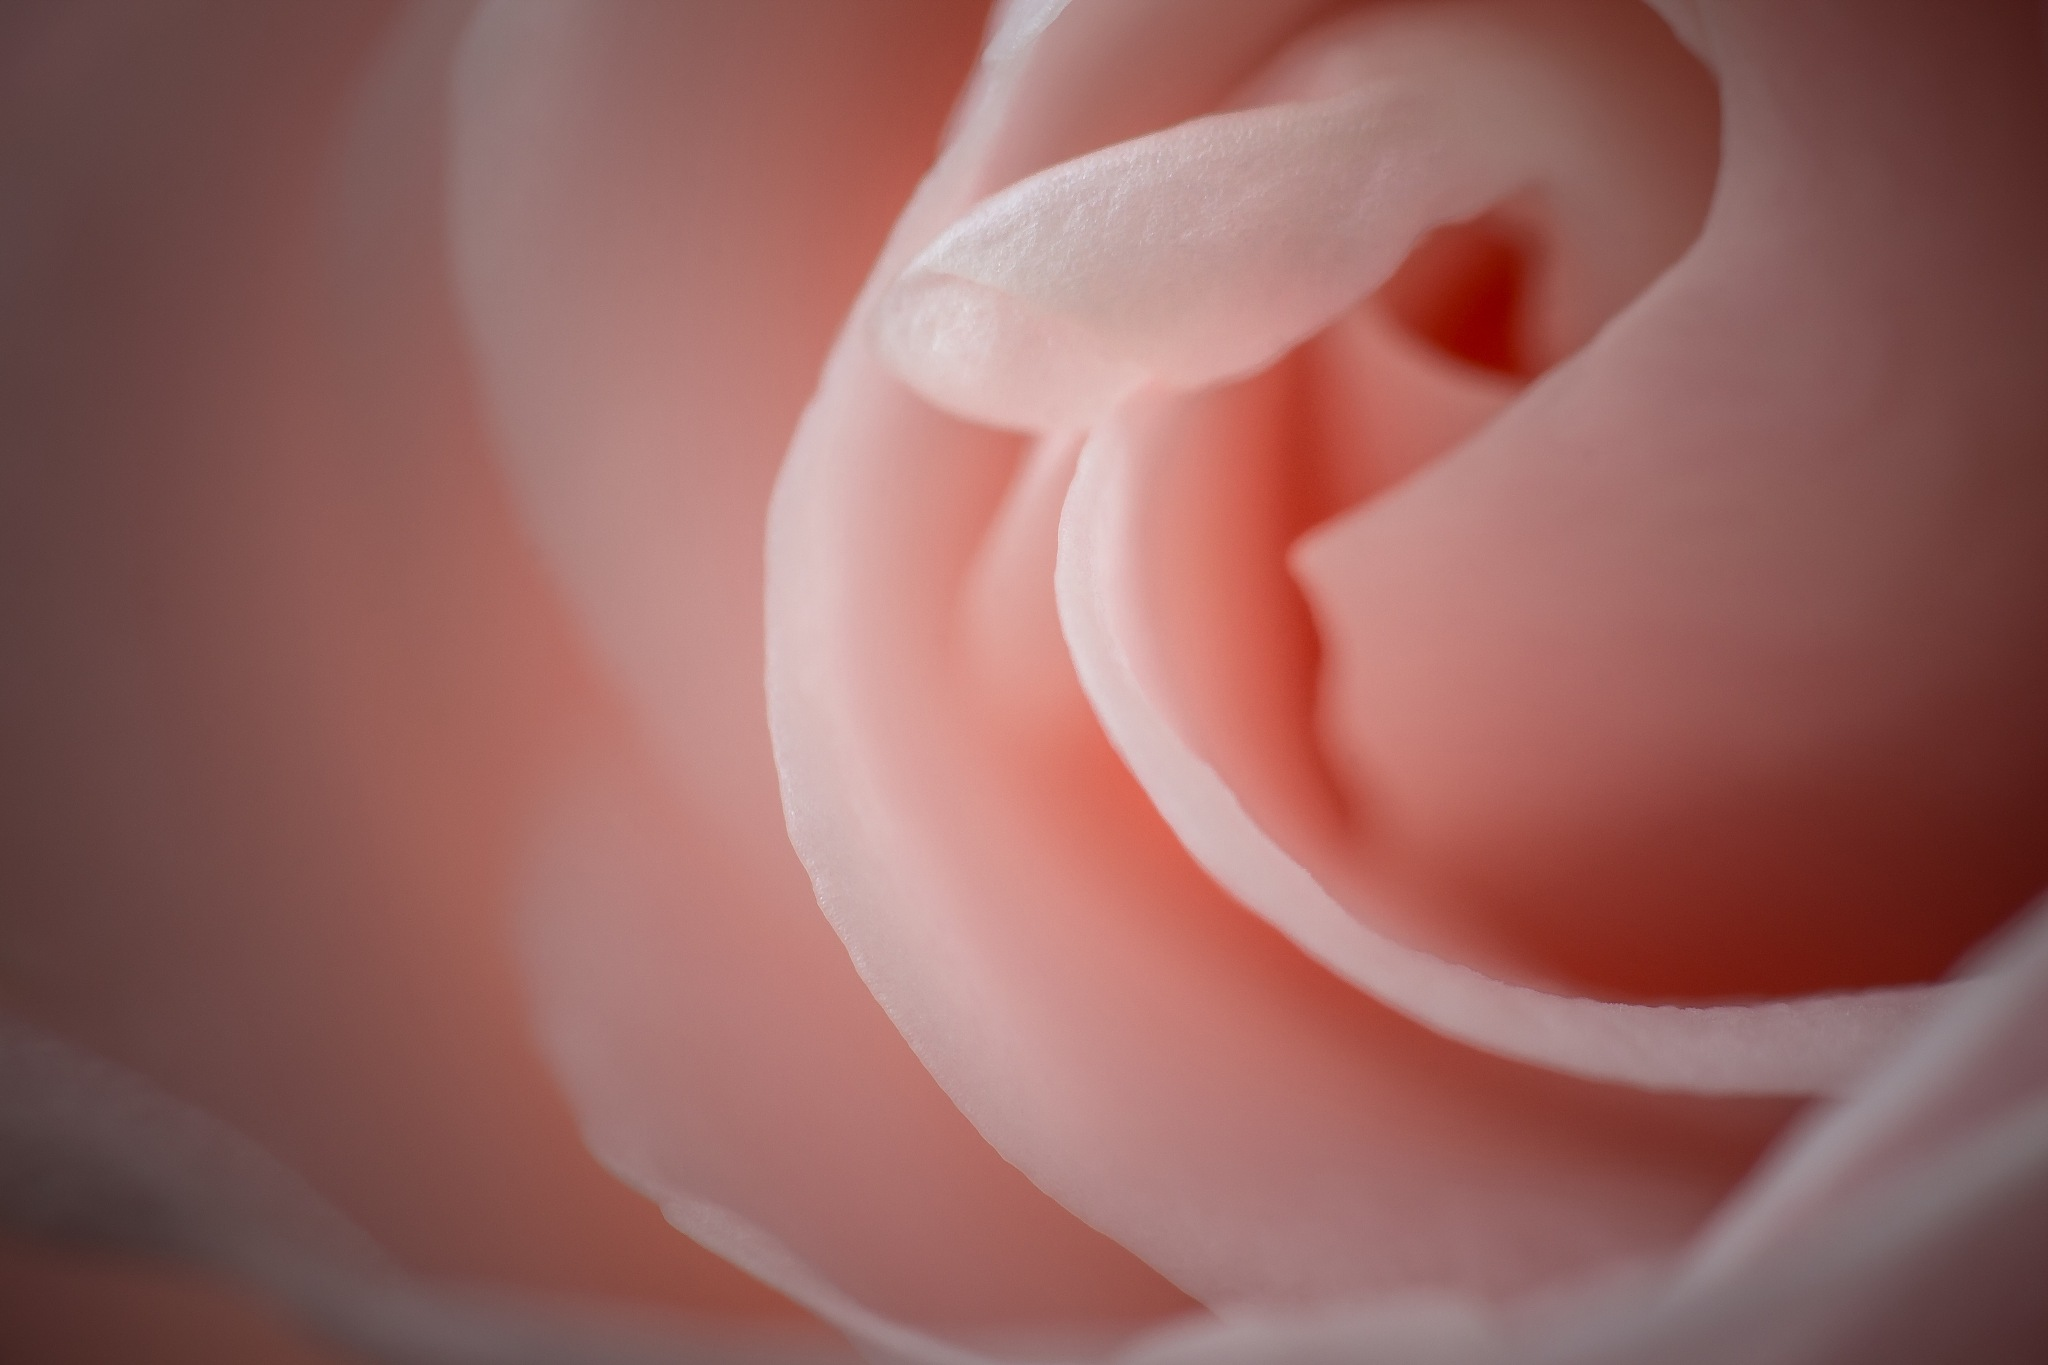 Rose 1 by khattou Mourad